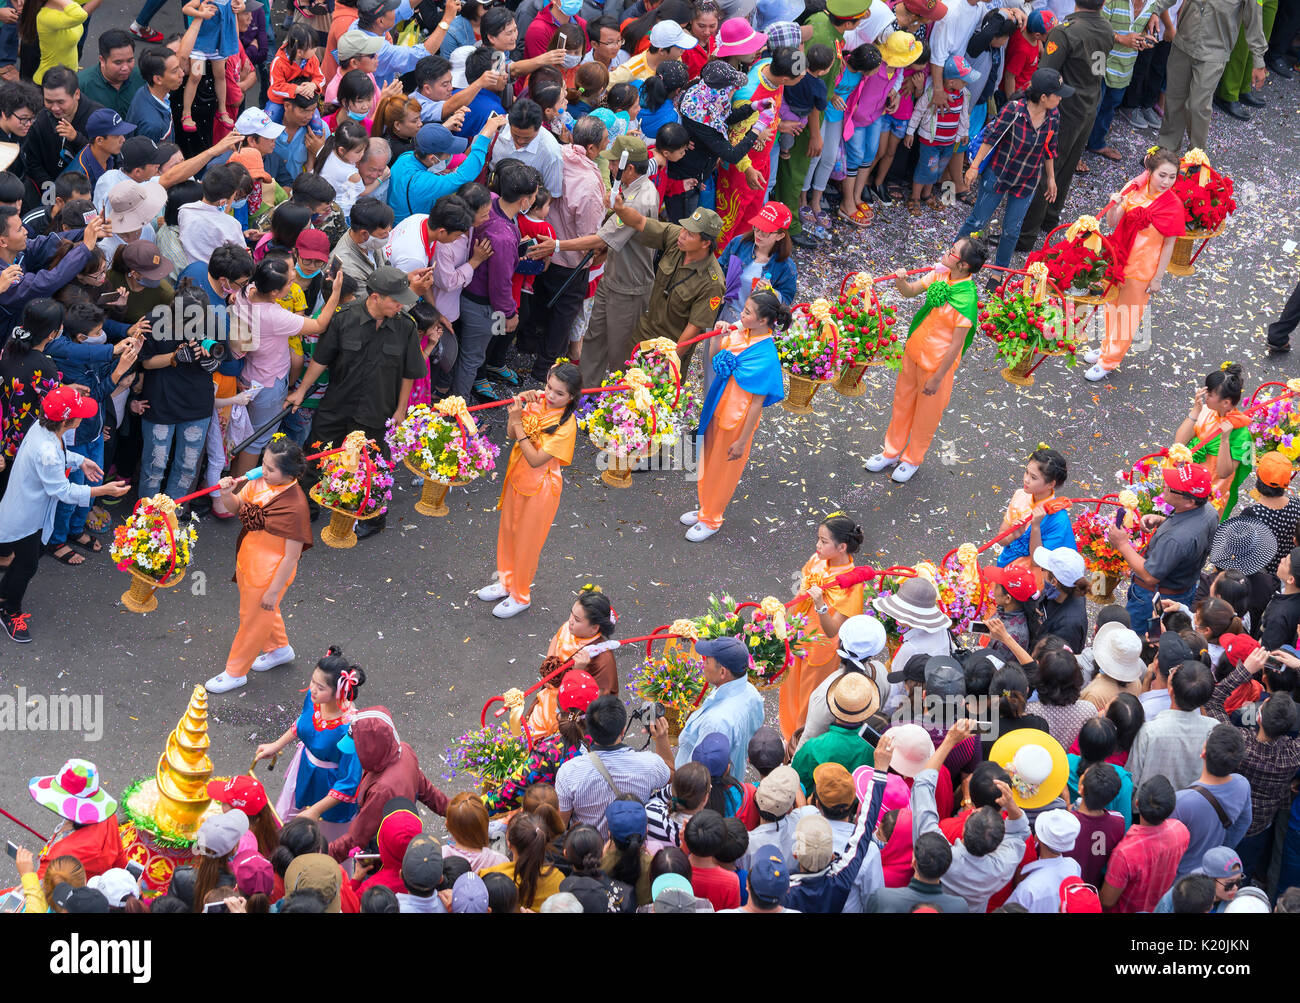 Festival Chinese Lantern with car flags, girls on the car donated money, fortune for visitors as good luck early in the street parade in Binh Duong - Stock Image